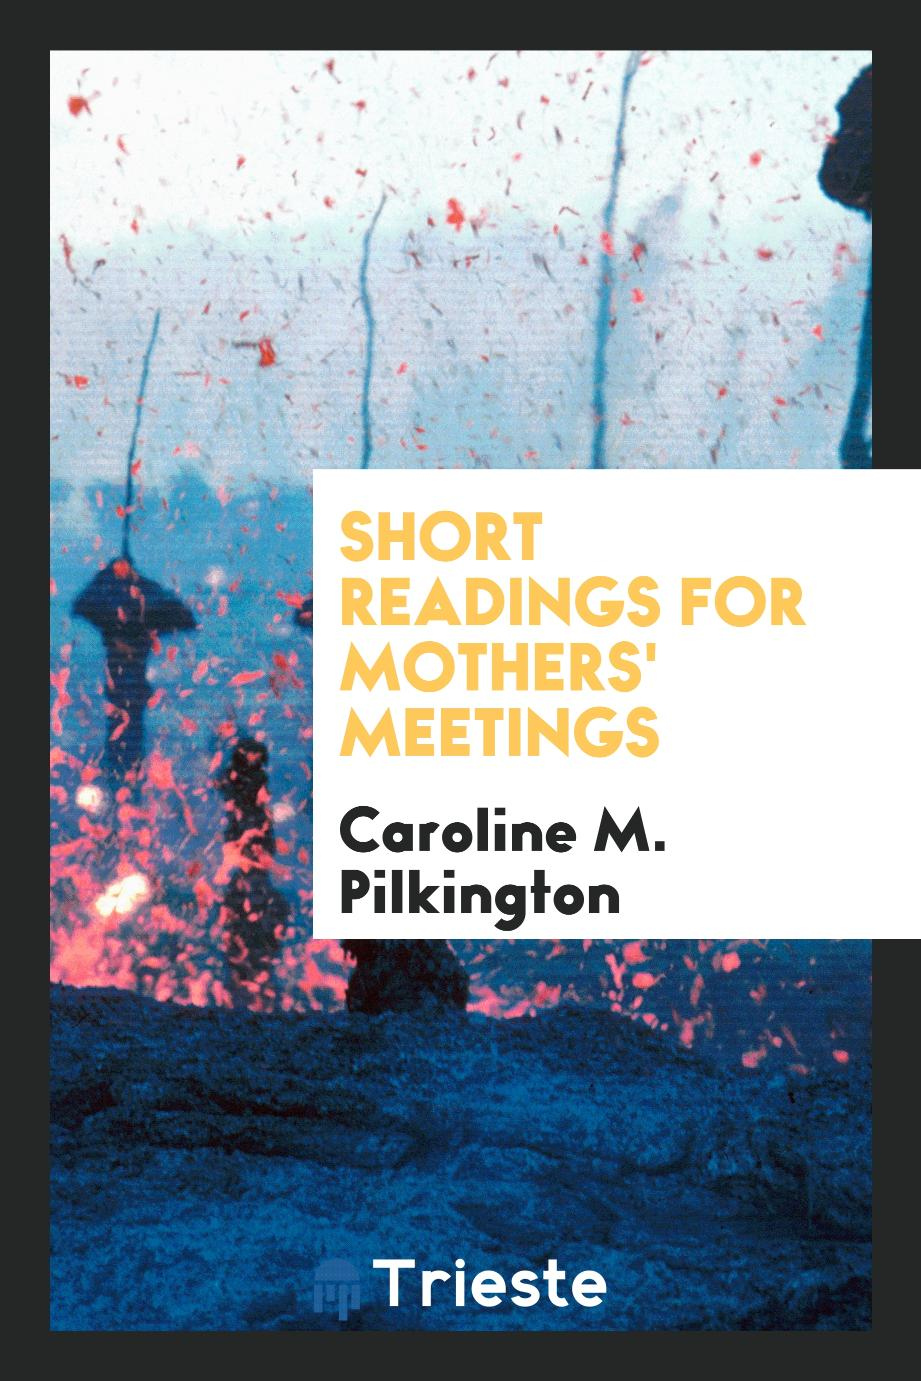 Short Readings for Mothers' Meetings